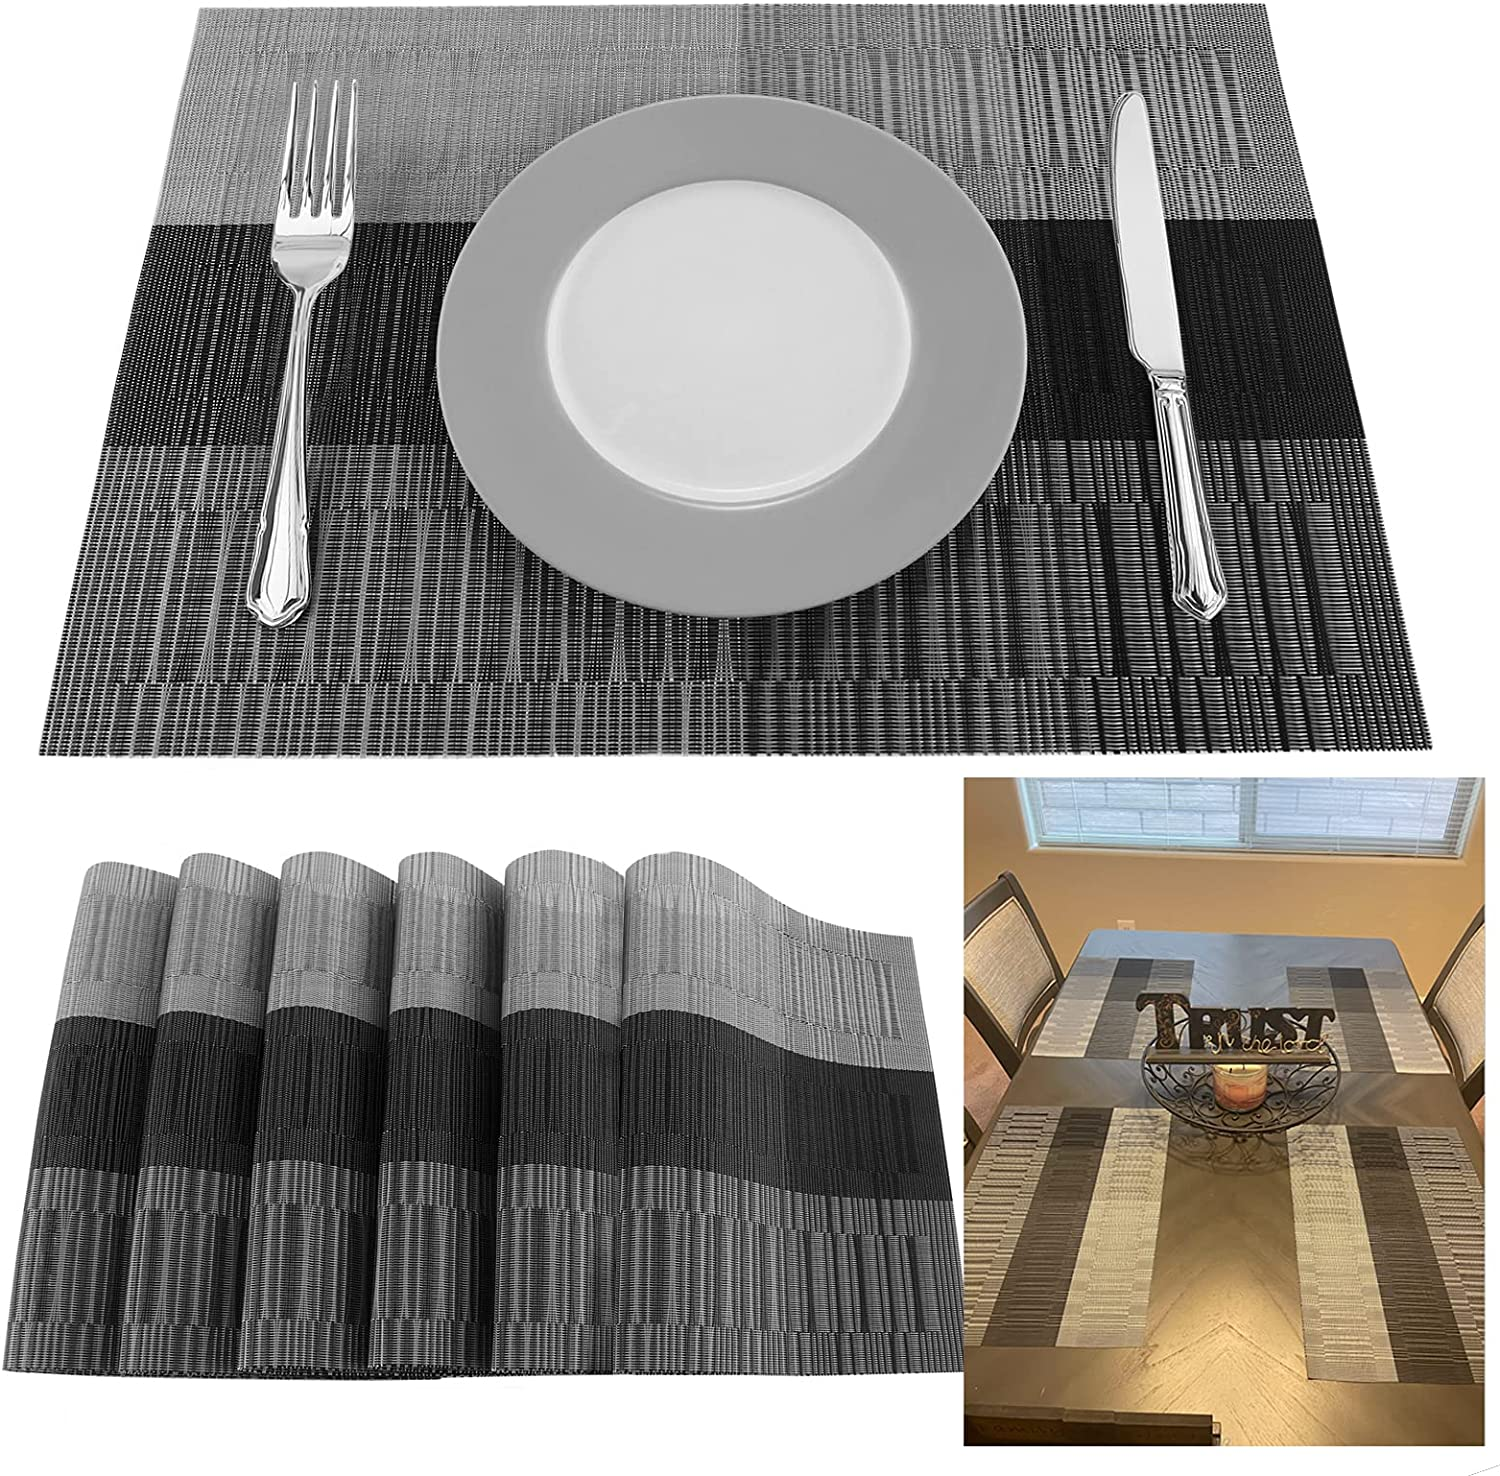 Atemws Placemats Vinyl Woven Dinning Table Mats Washable Non-Slip Farmhouse Place Mats Set of 6: Kitchen & Dining